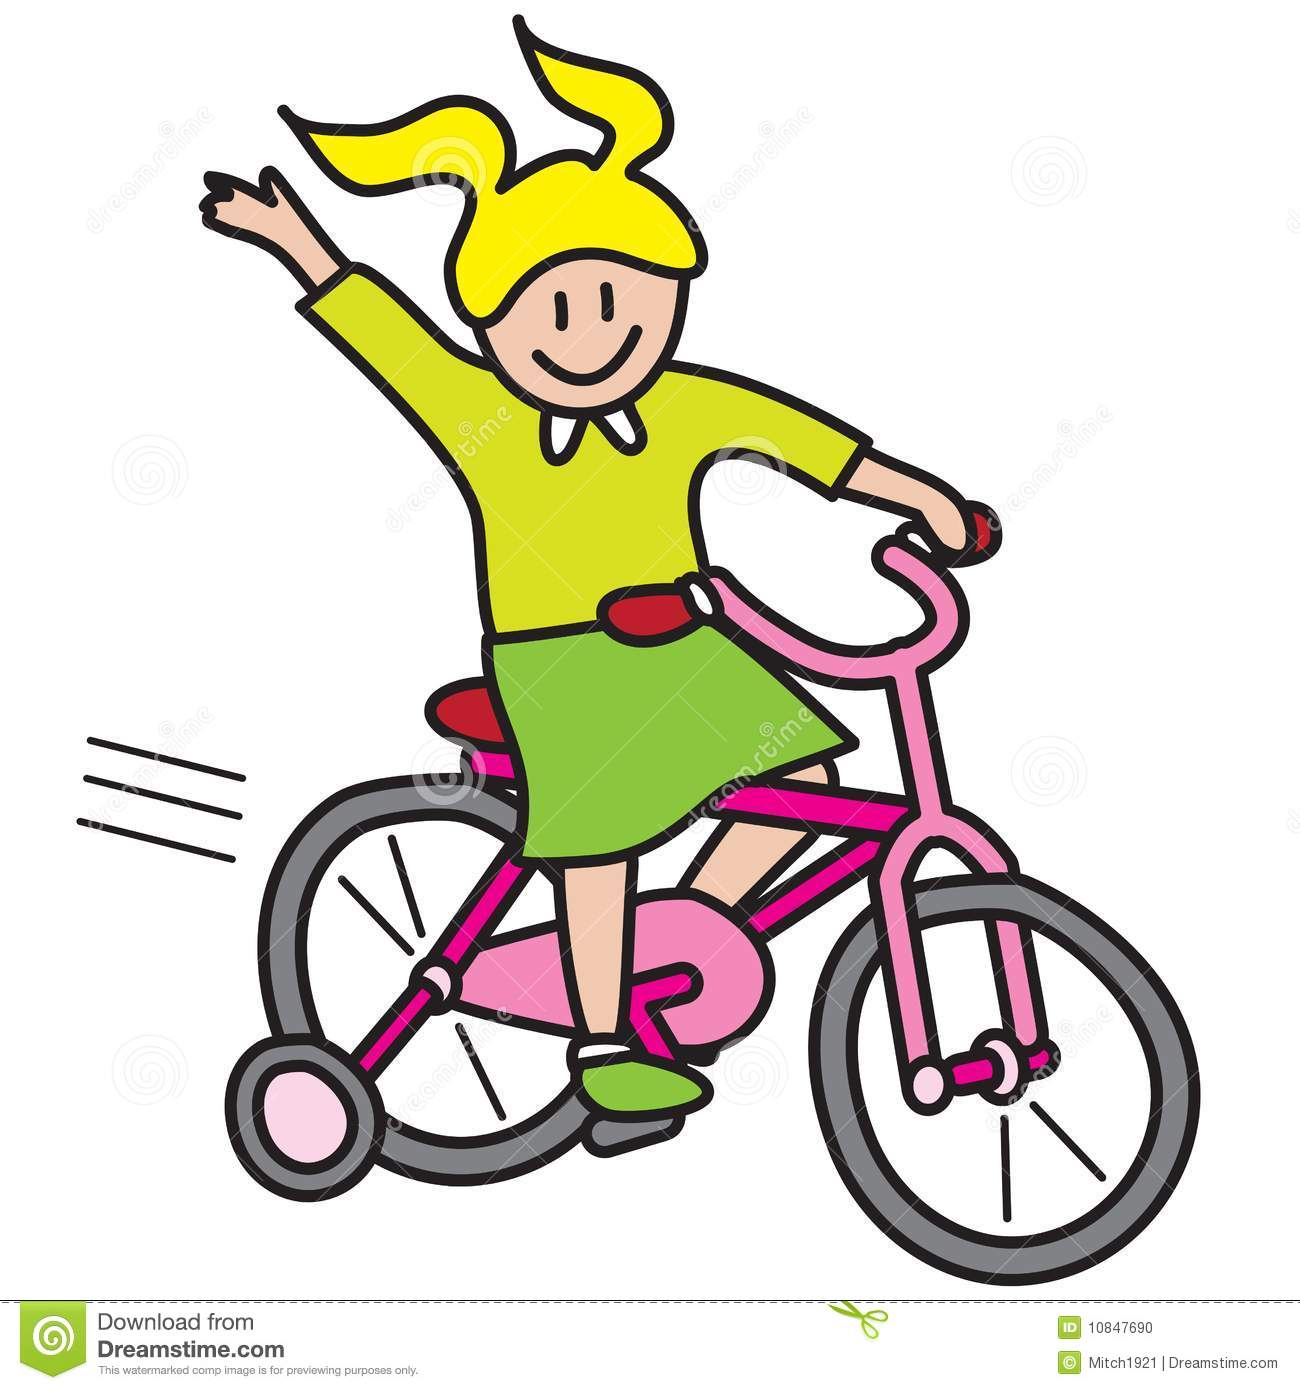 Clipart bicycle rode. Clip art riding a